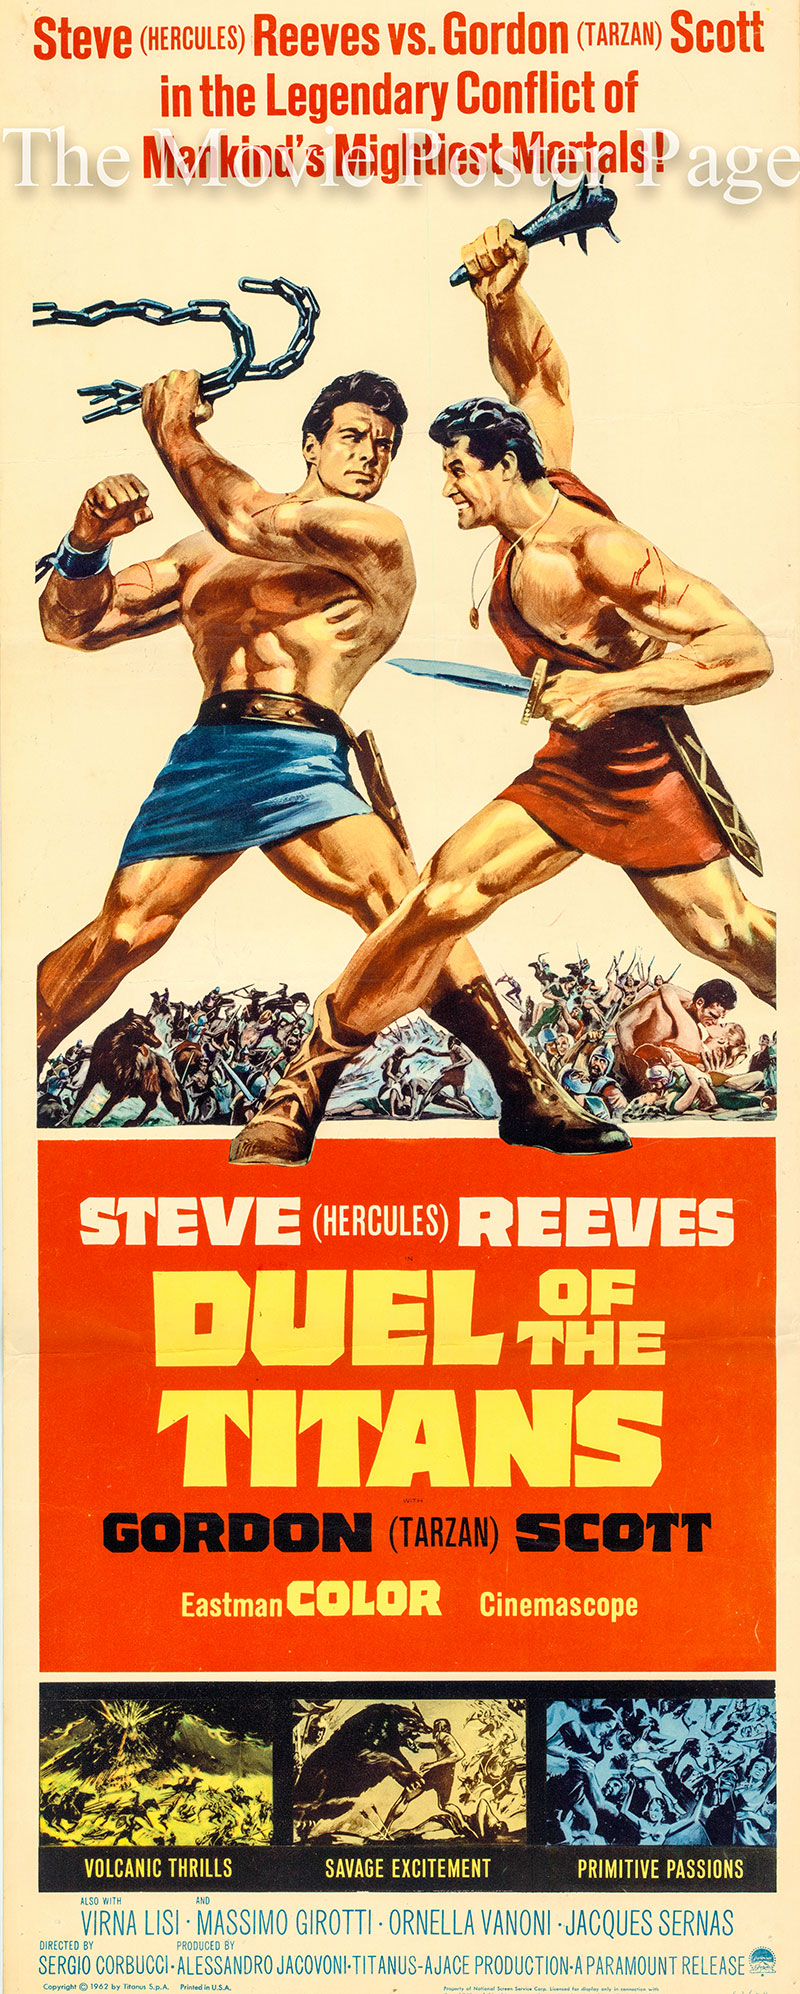 Pictured is a US insert poster for the 1963 Sergio Corbucci film Duel of the Titans starring Steve Reeves and Gordon Scott.